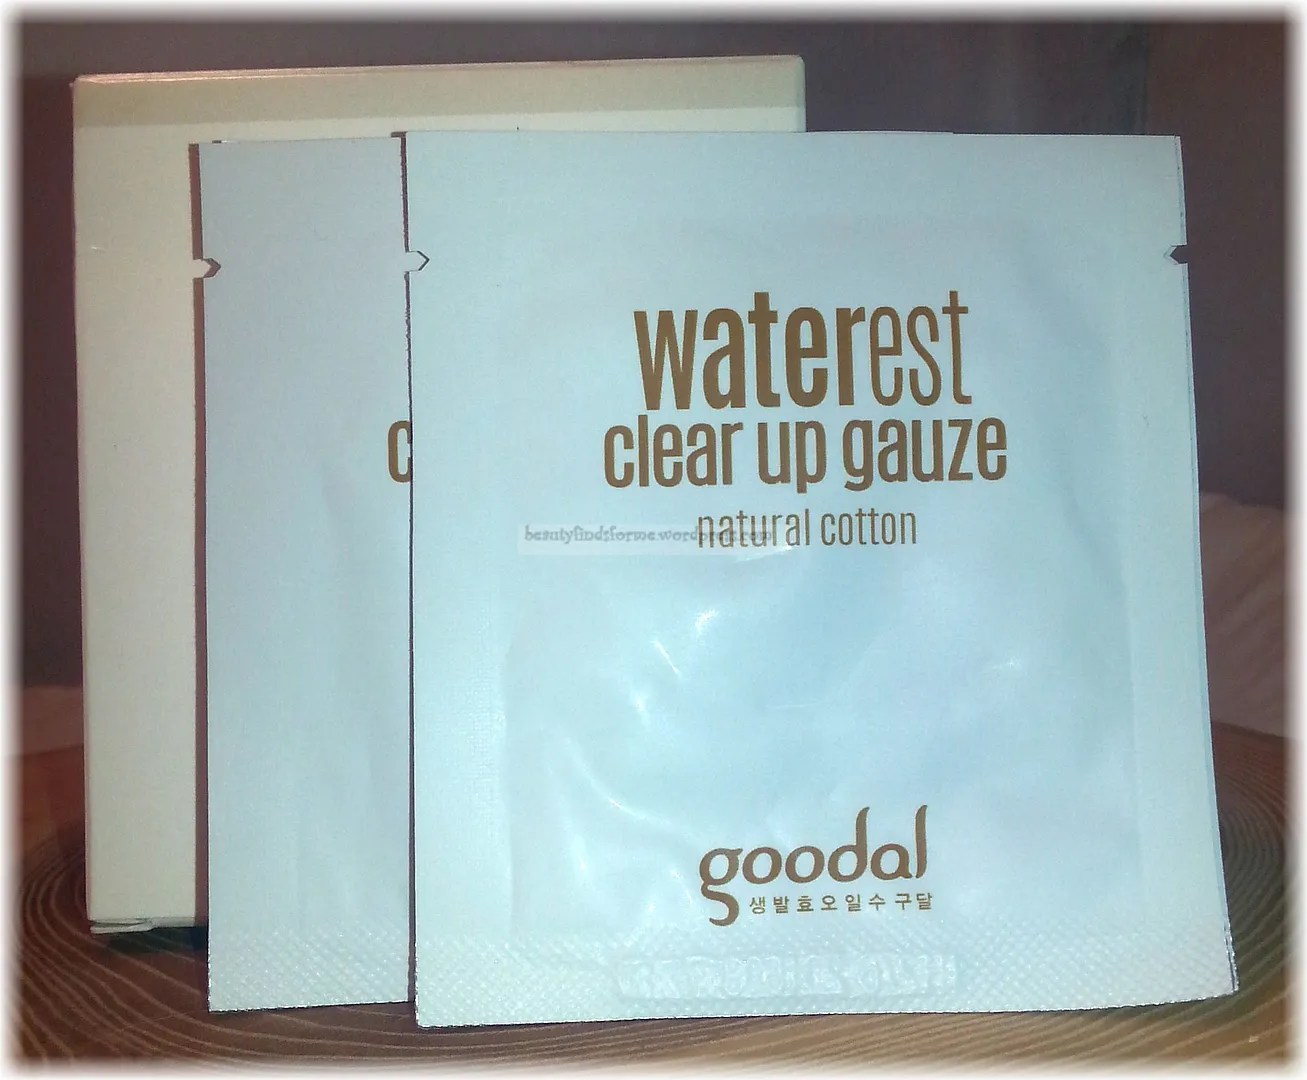 goodal waterest clear up gauze how to use